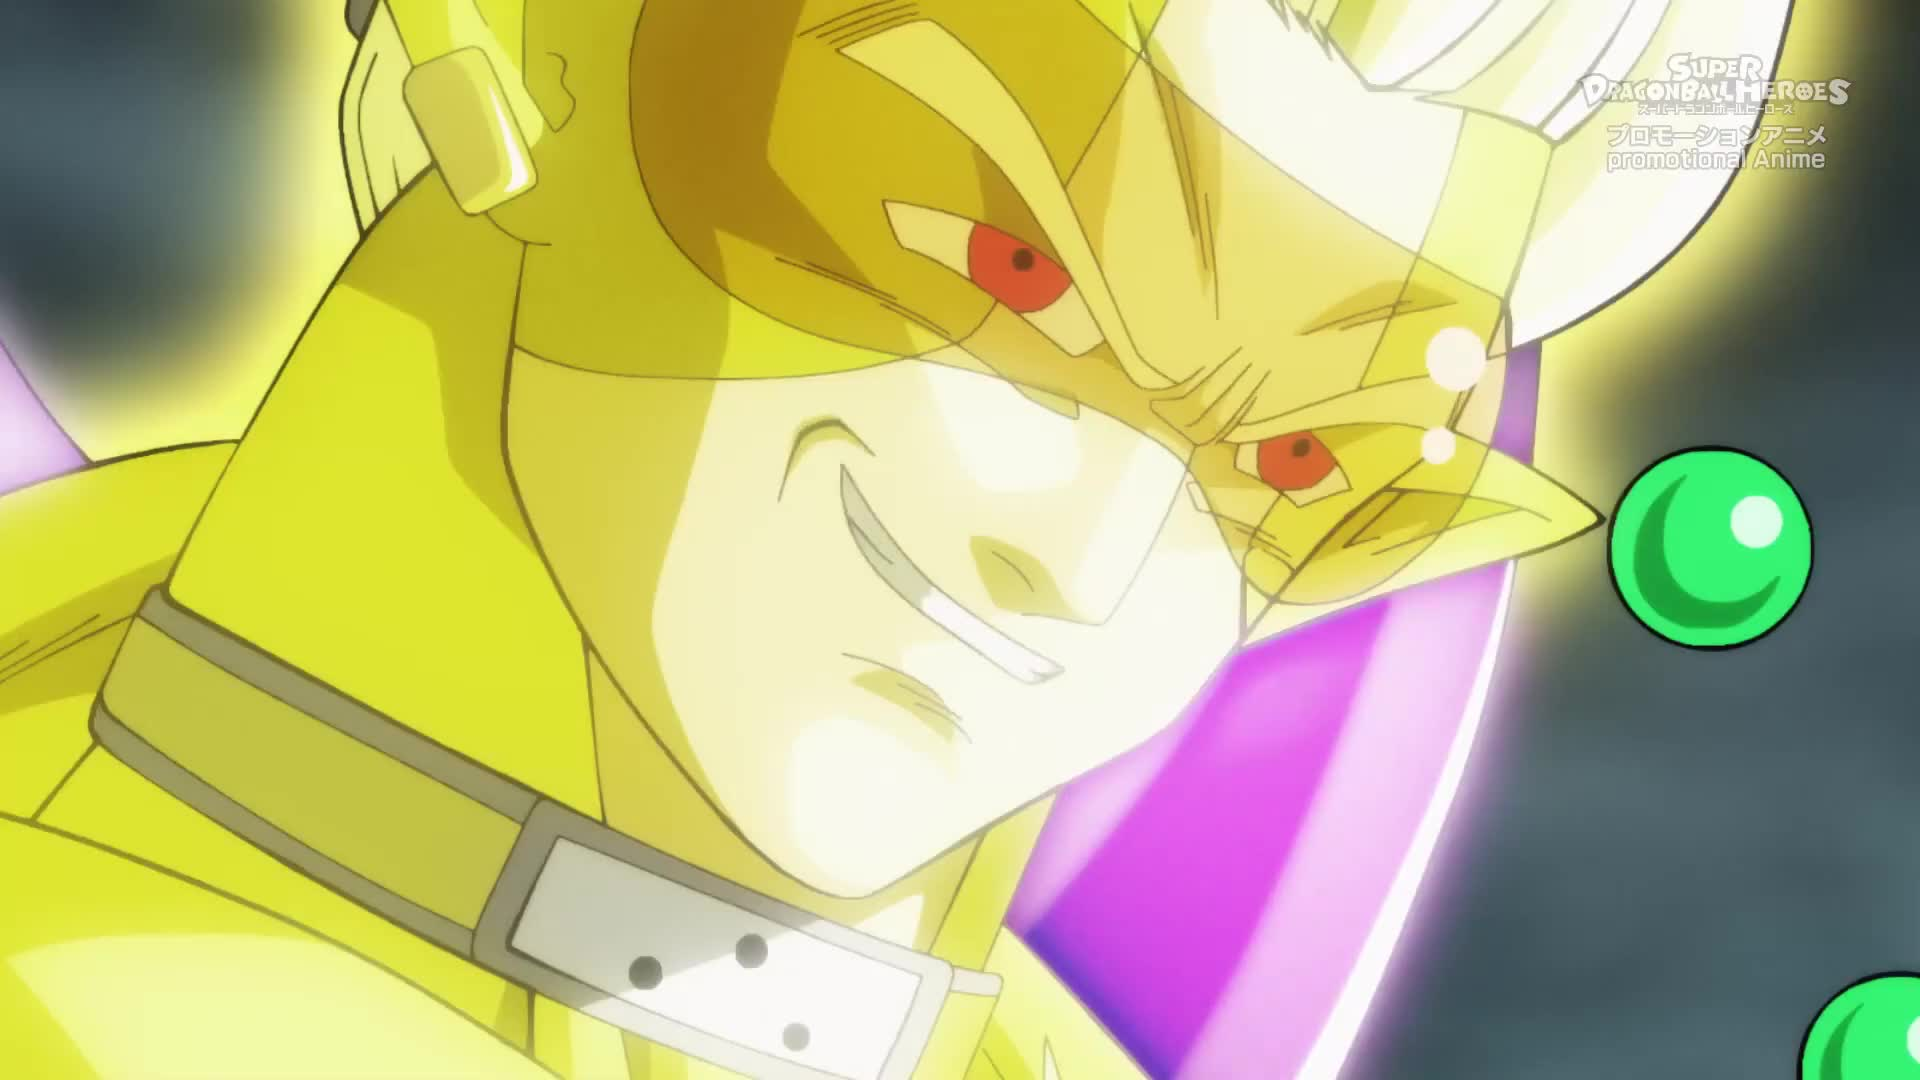 y2mate.com - super_dragon_ball_heroes_episode_17_gogeta_returns_iws-xMZVPRw_1080p_8865.jpg